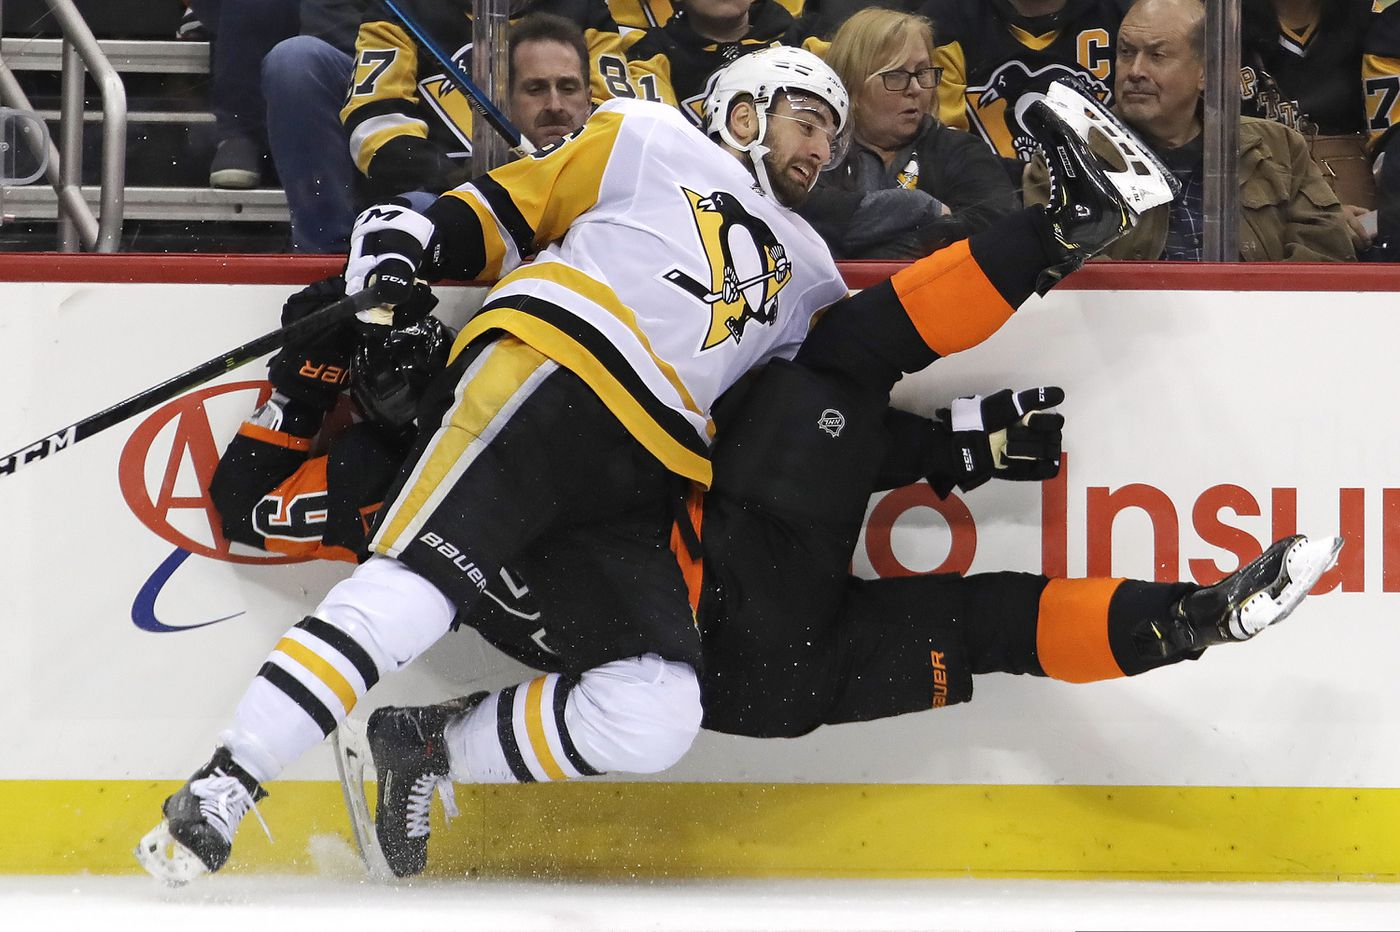 Flyers want emotional play vs. Penguins to have carryover effect